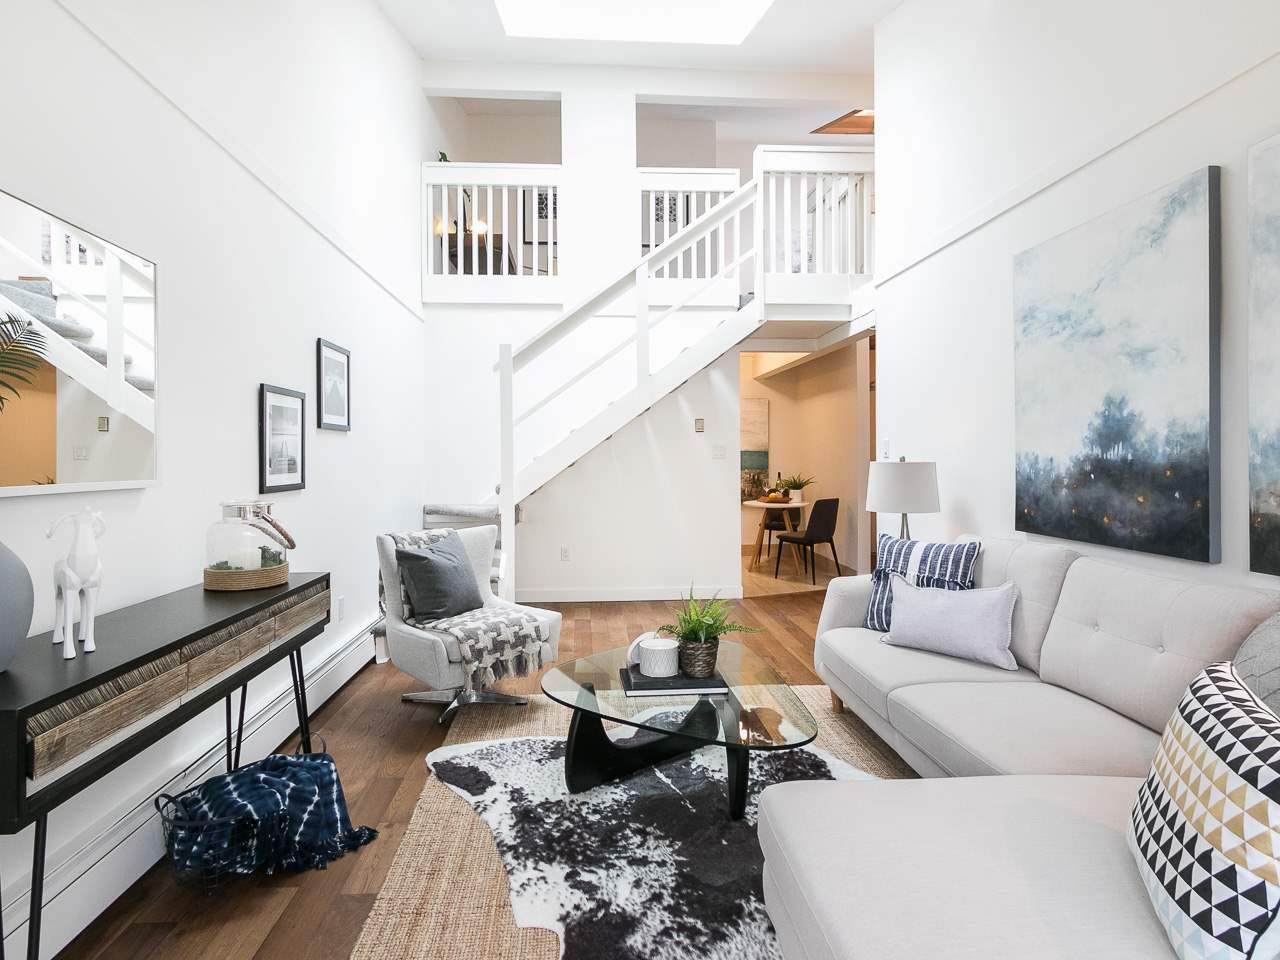 """Main Photo: 301 2190 W 7TH Avenue in Vancouver: Kitsilano Condo for sale in """"SUNSET WEST"""" (Vancouver West)  : MLS®# R2252526"""